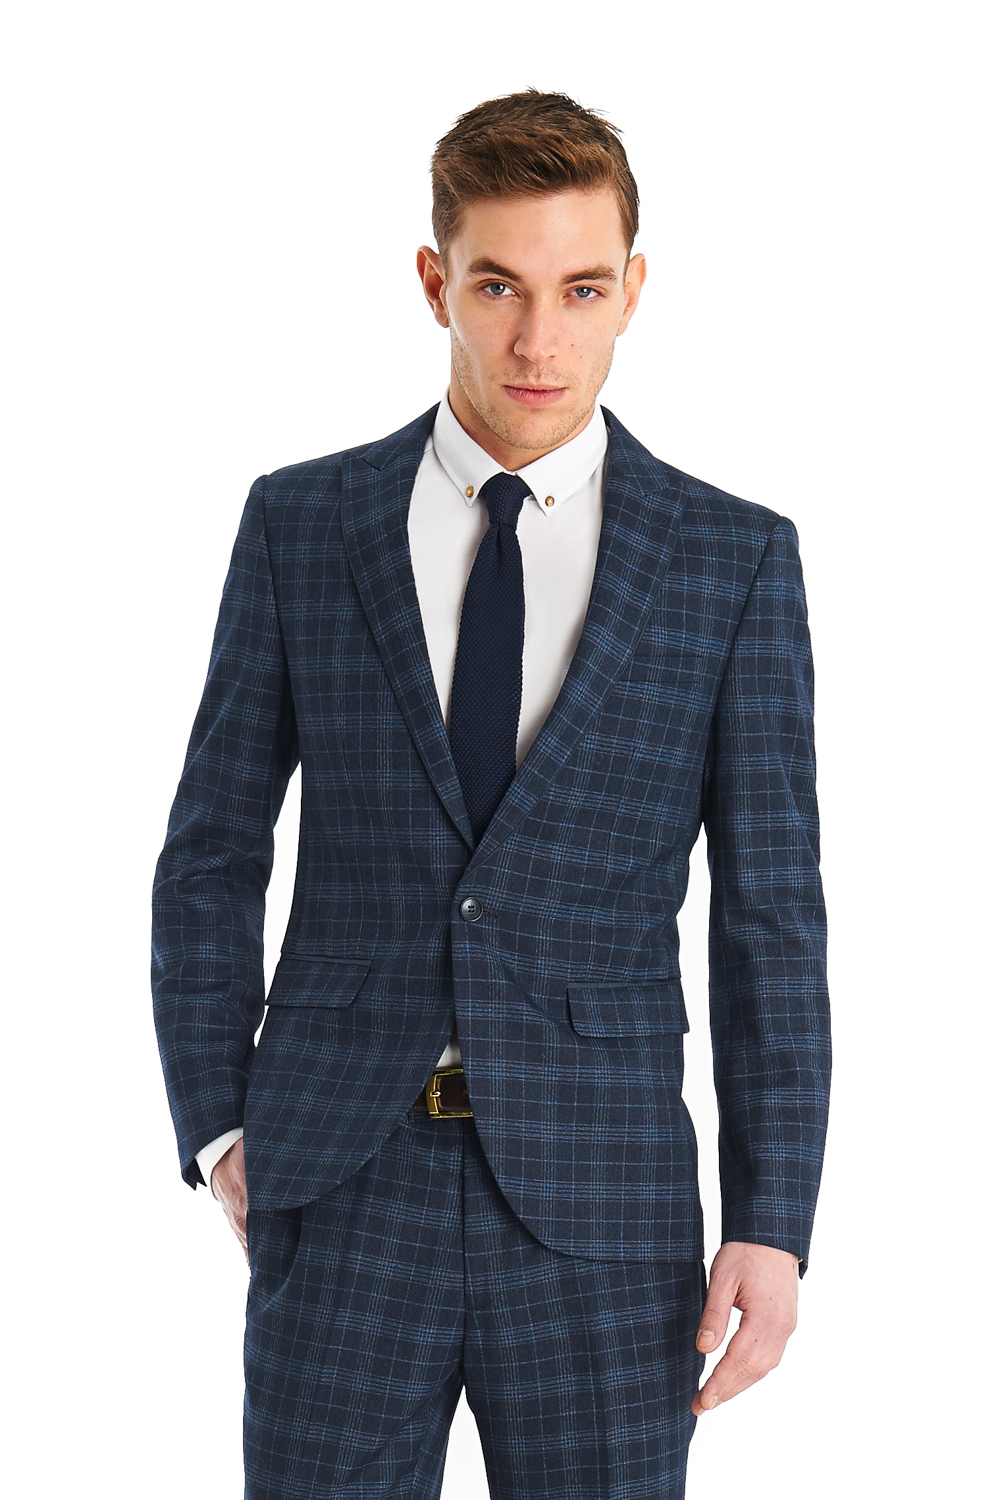 Advice on shirt and tie to wear with this suit